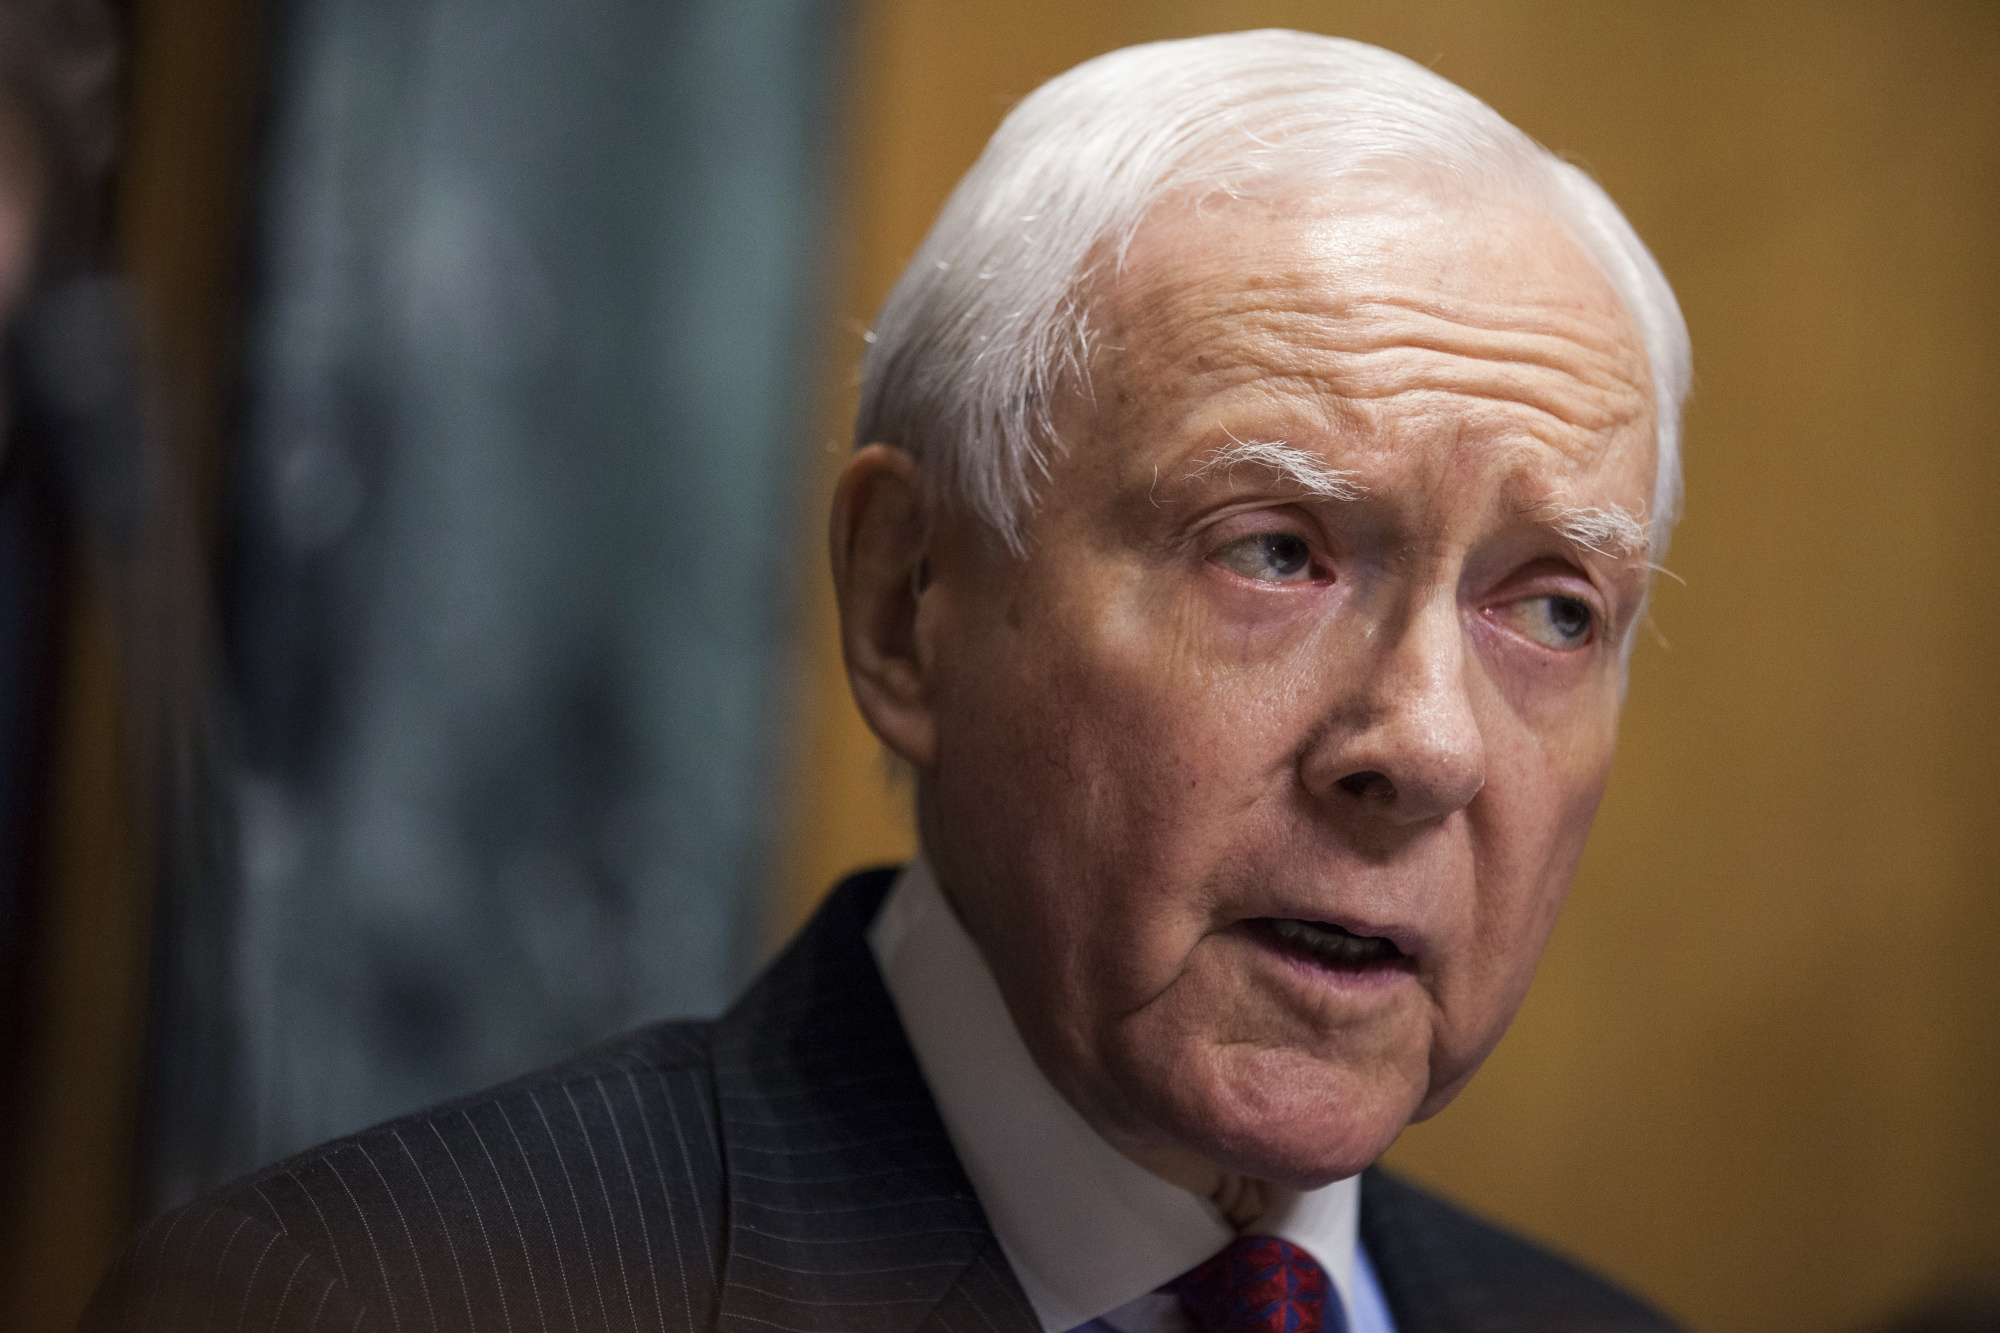 SENATE FINANCE COMMITTEE CHAIRMAN ORRIN HATCH, R-Utah, says that it is not a given that the taxes that were rolled back in the House of Representatives' American Health Care Act will be written out of the Senate's version of health care reform.